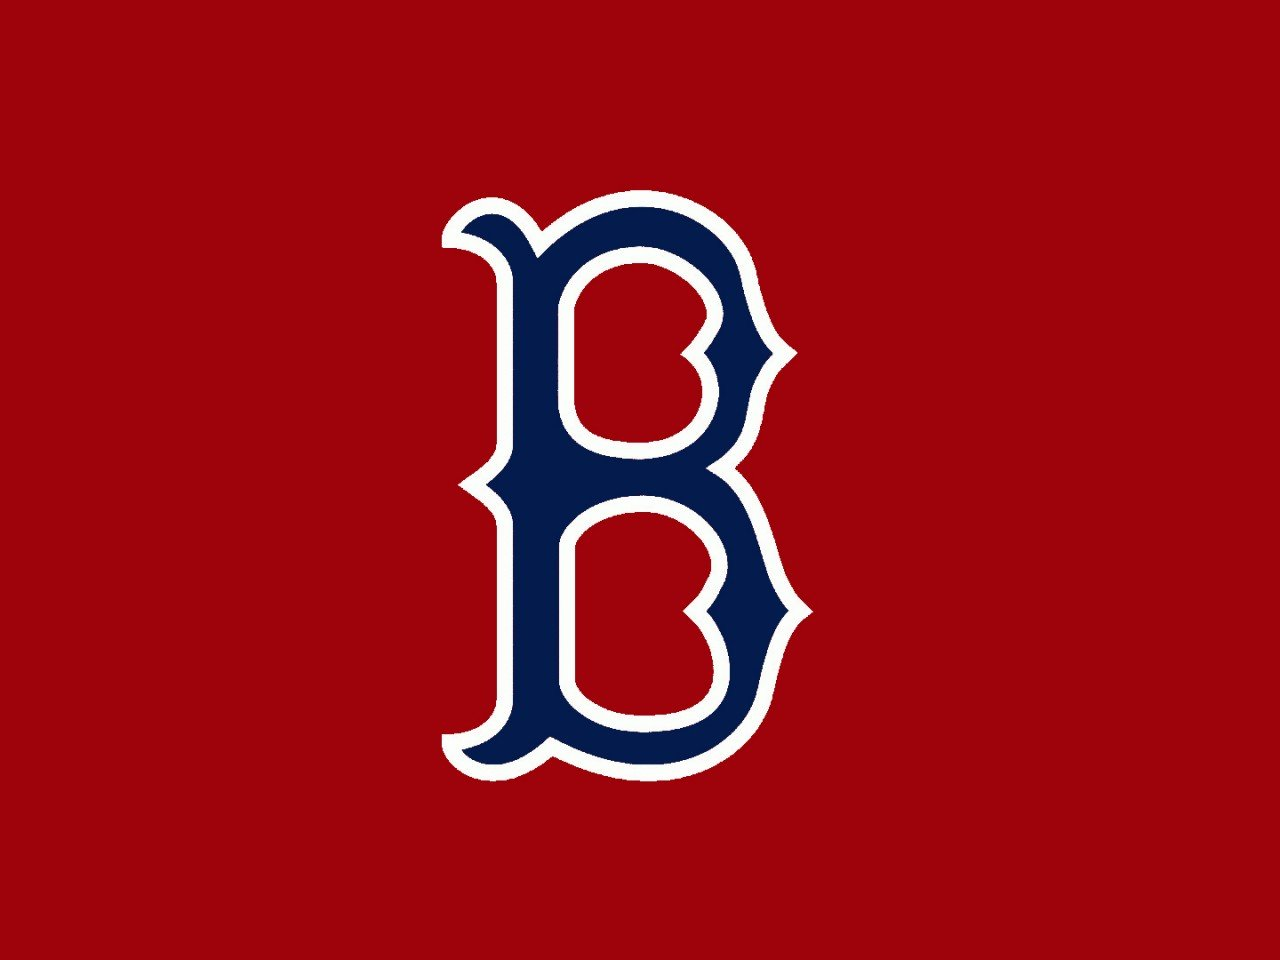 Boston Red Sox wallpapers Boston Red Sox background 1280x960